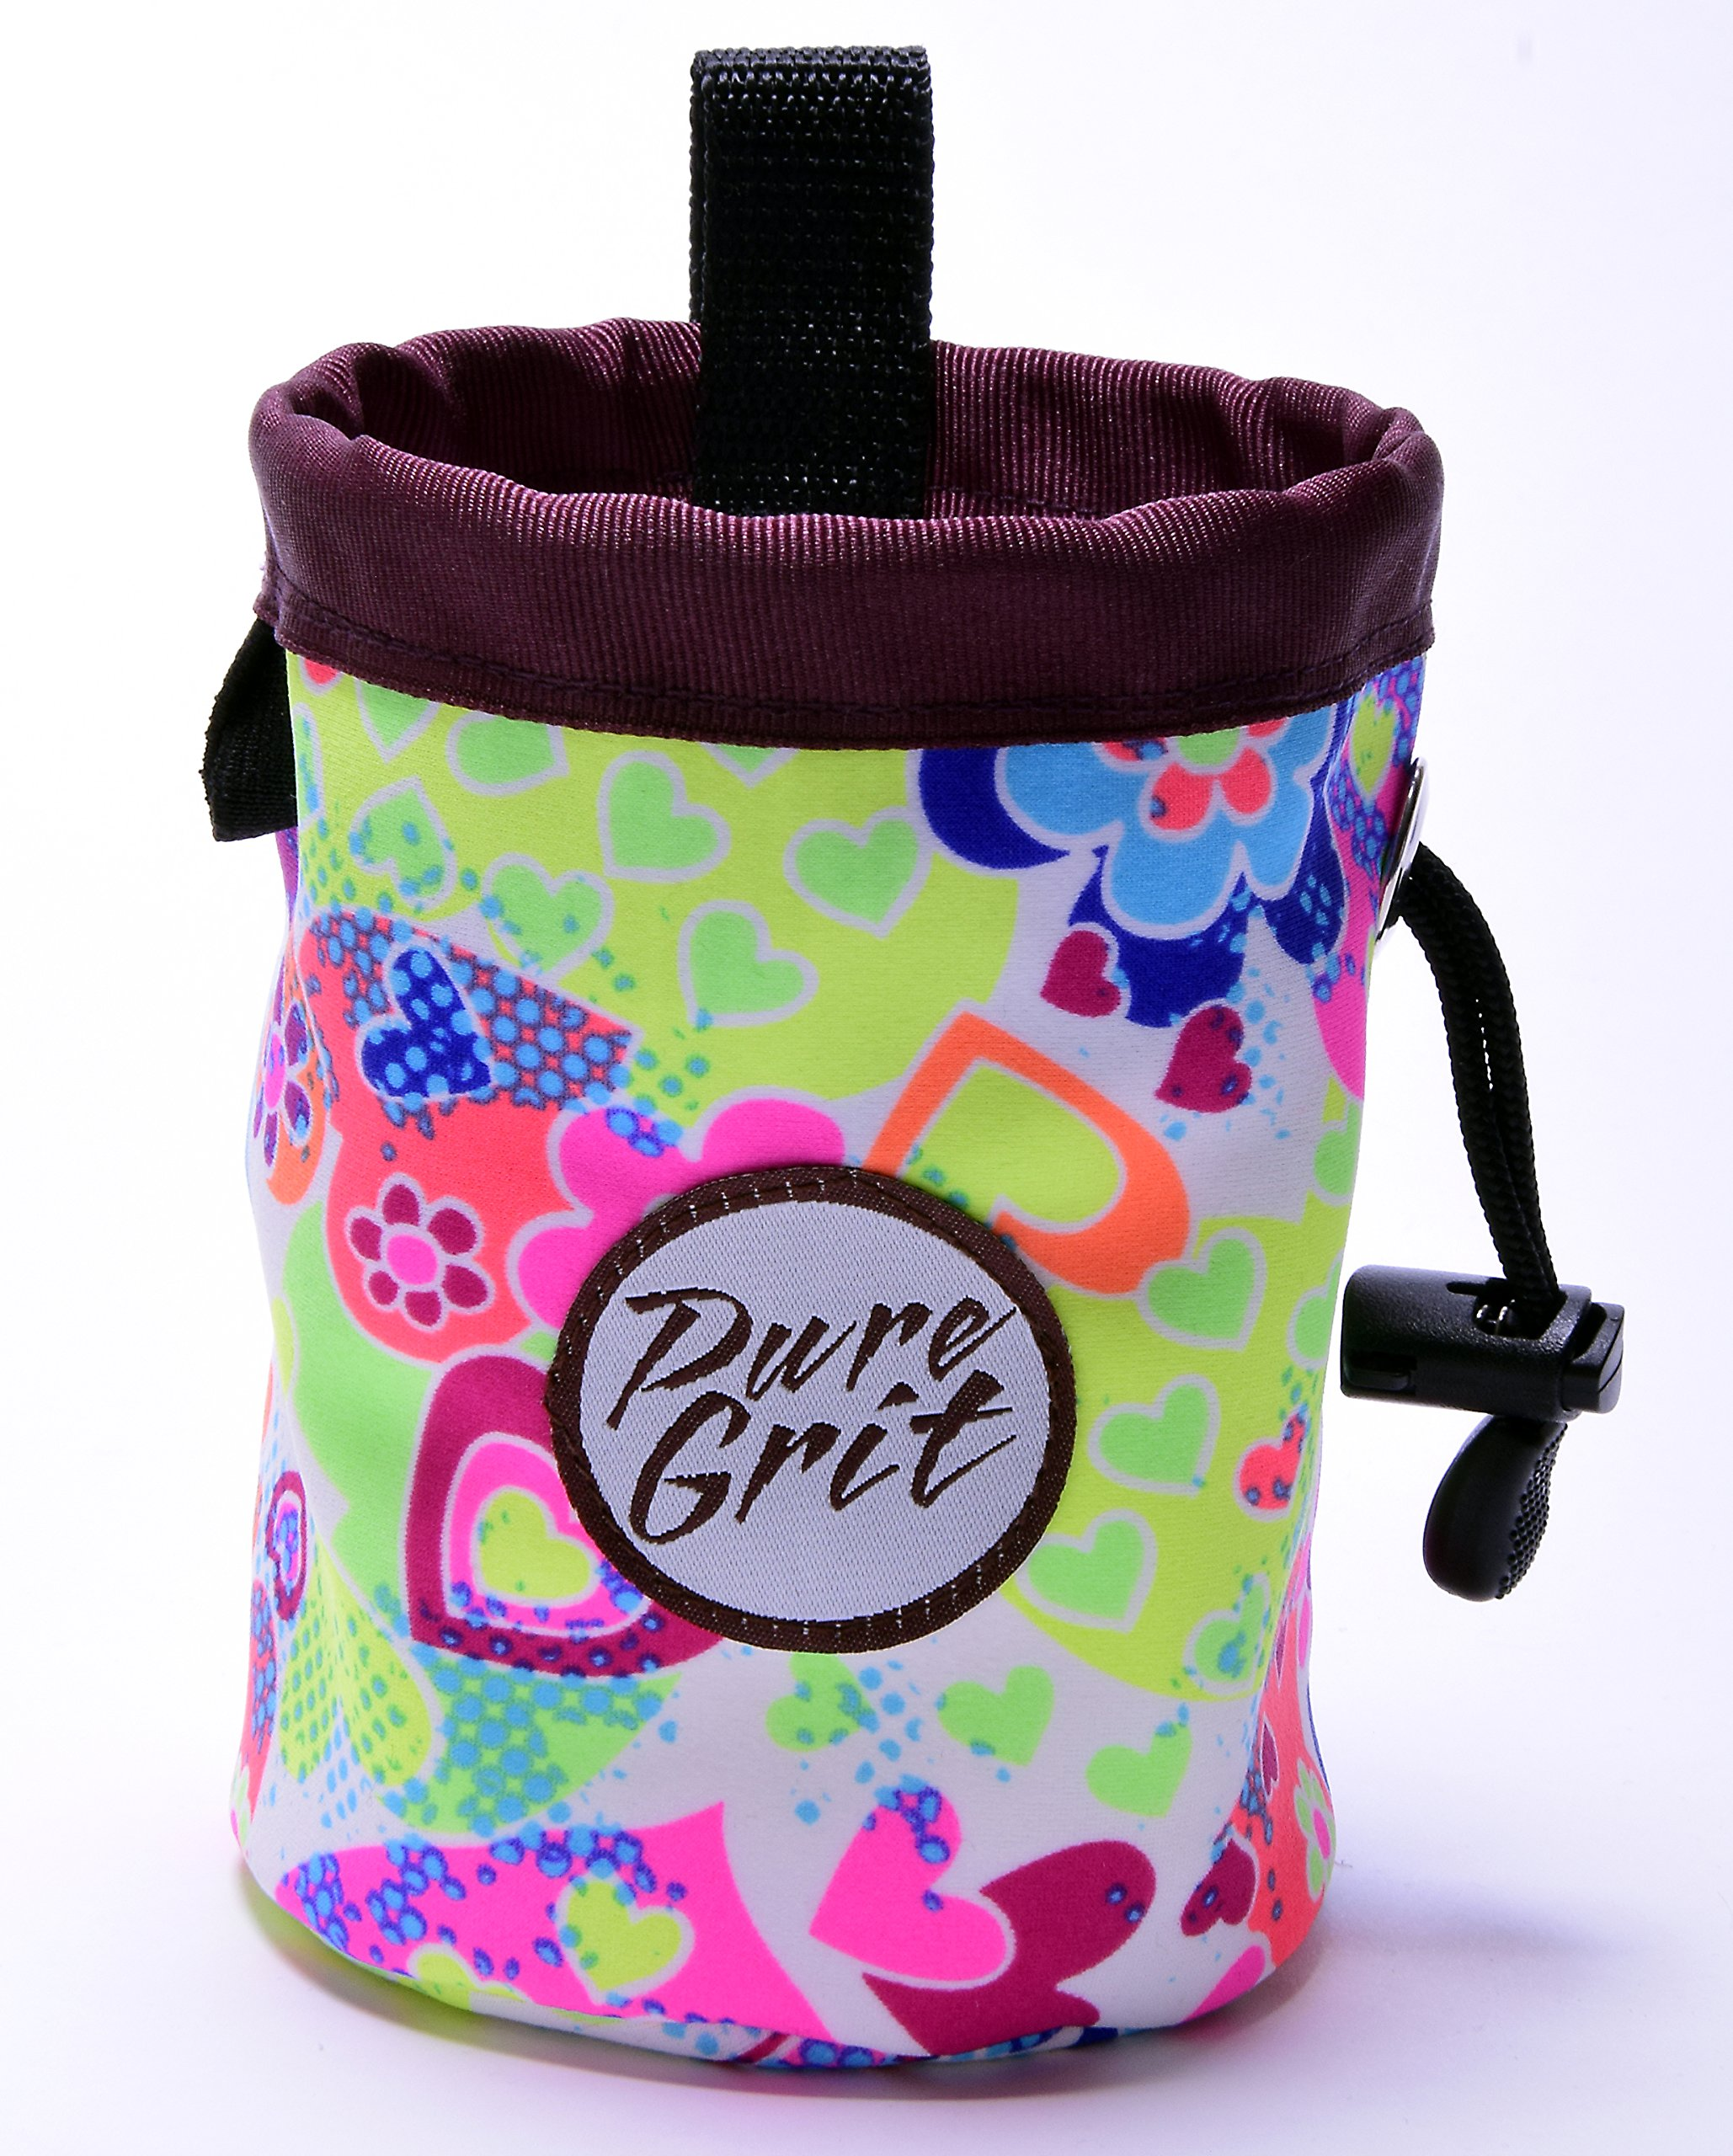 Little Kid Sized Bubble Gum Chalk Bag for 3-8 Year Olds (Usa Made) By Pure Grit